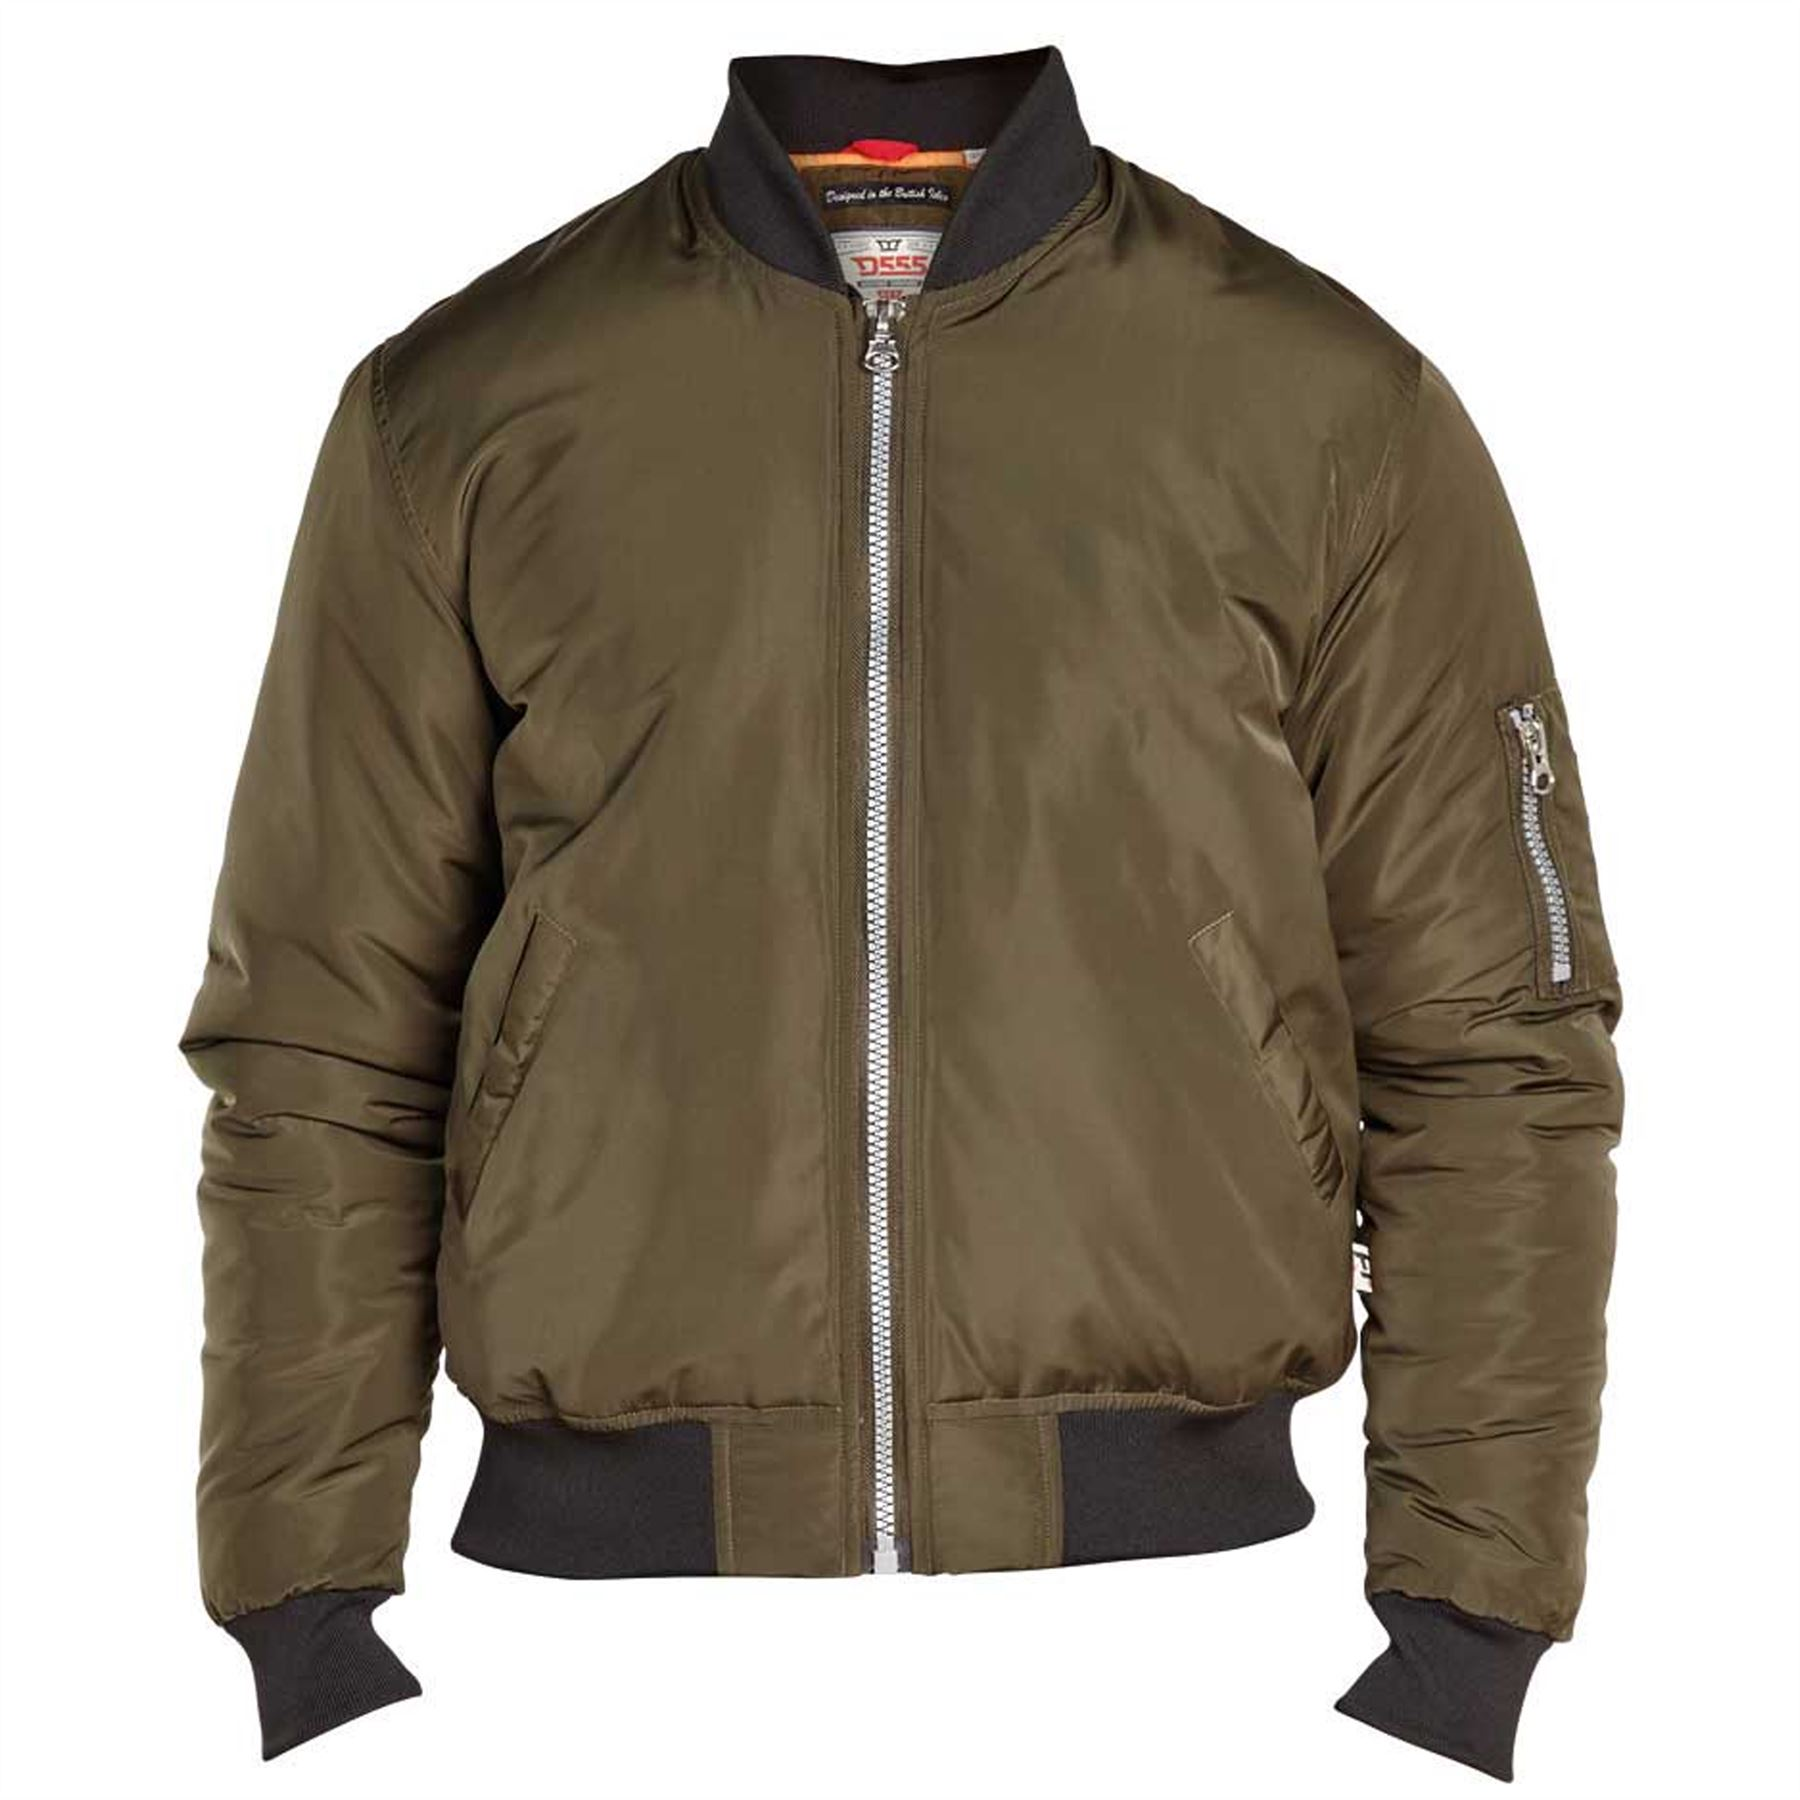 Shop the best selection of men's jackets at forex-2016.ga, where you'll find premium outdoor gear and clothing and experts to guide you through selection.